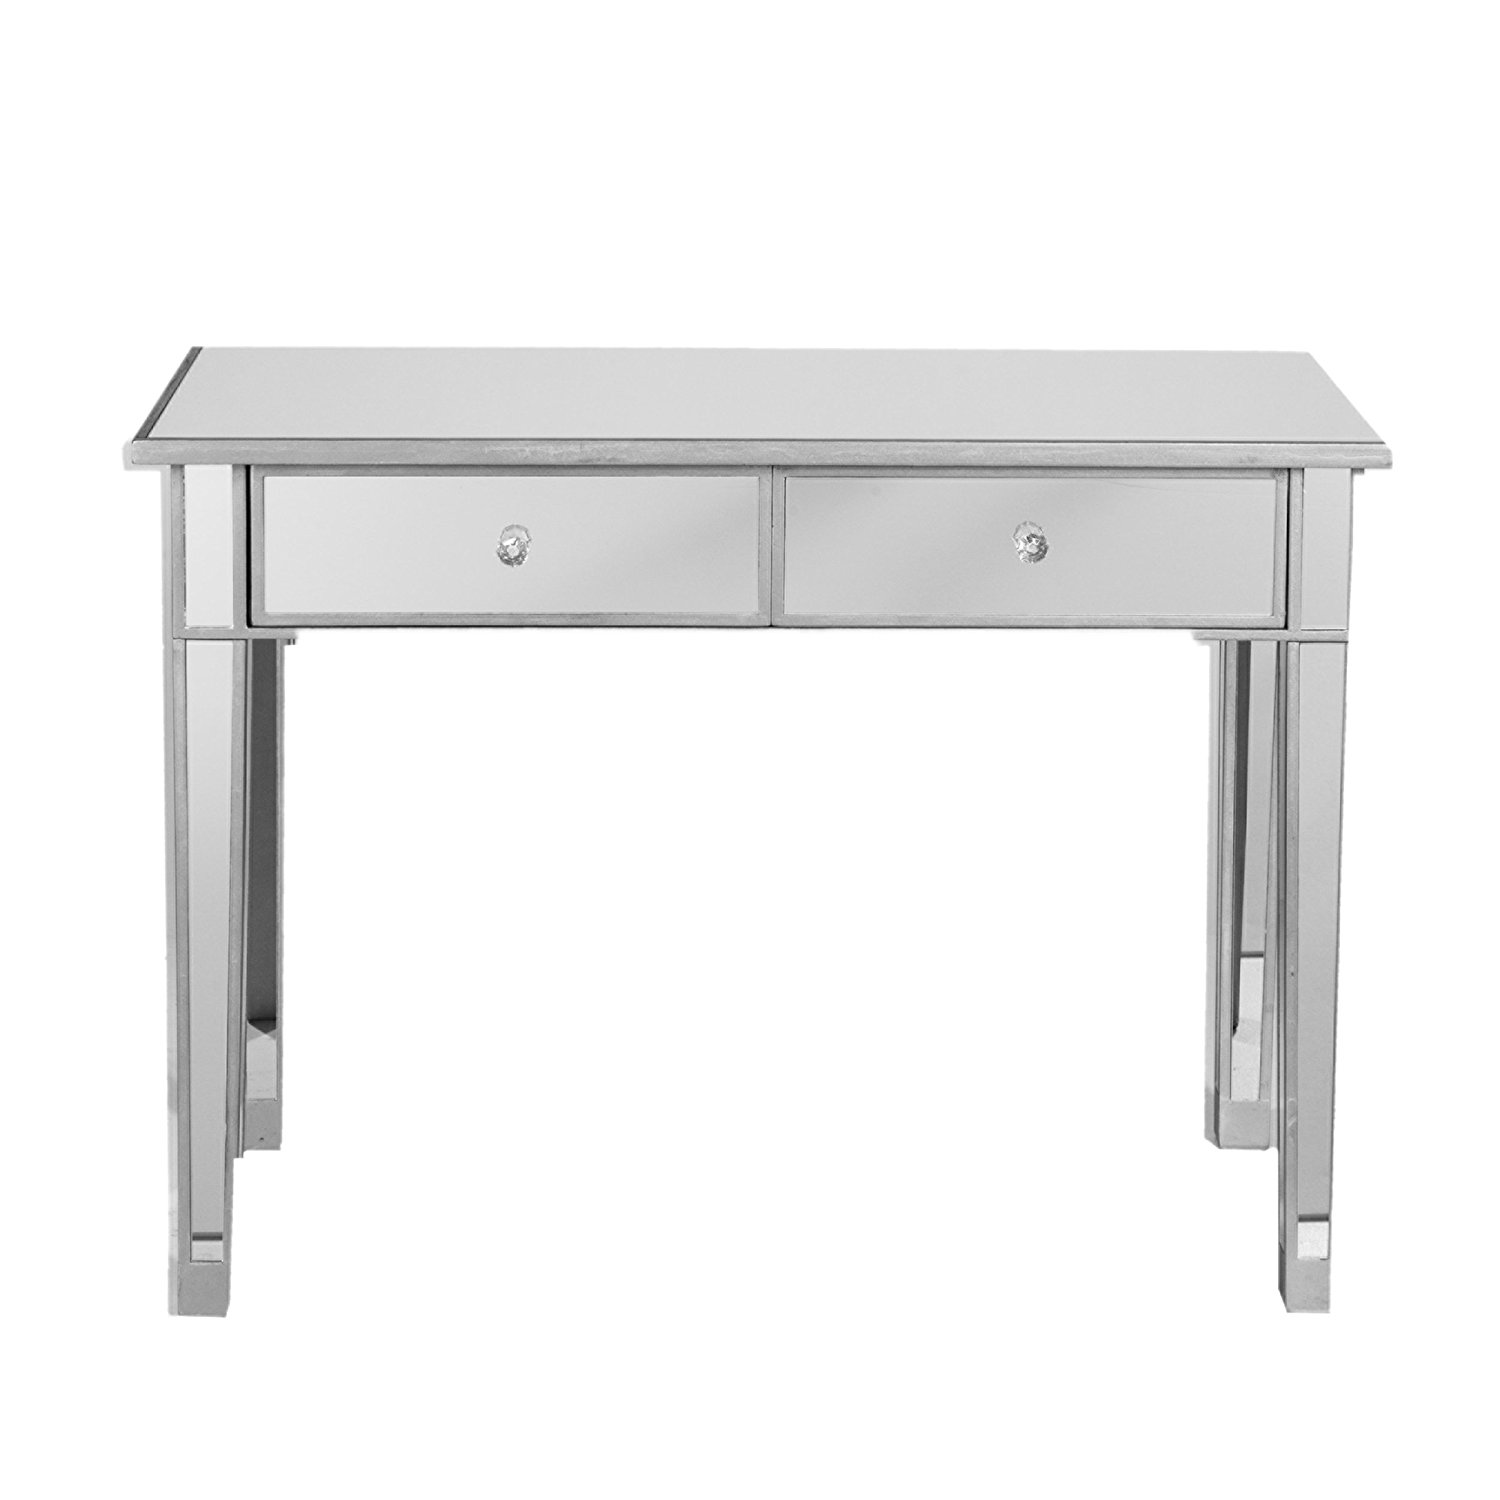 best glass mirrored accent table for beautiful touch homeindec southern enterprises mirage drawer media console matte silver finish with faux crystal knobs chandelier nightstand